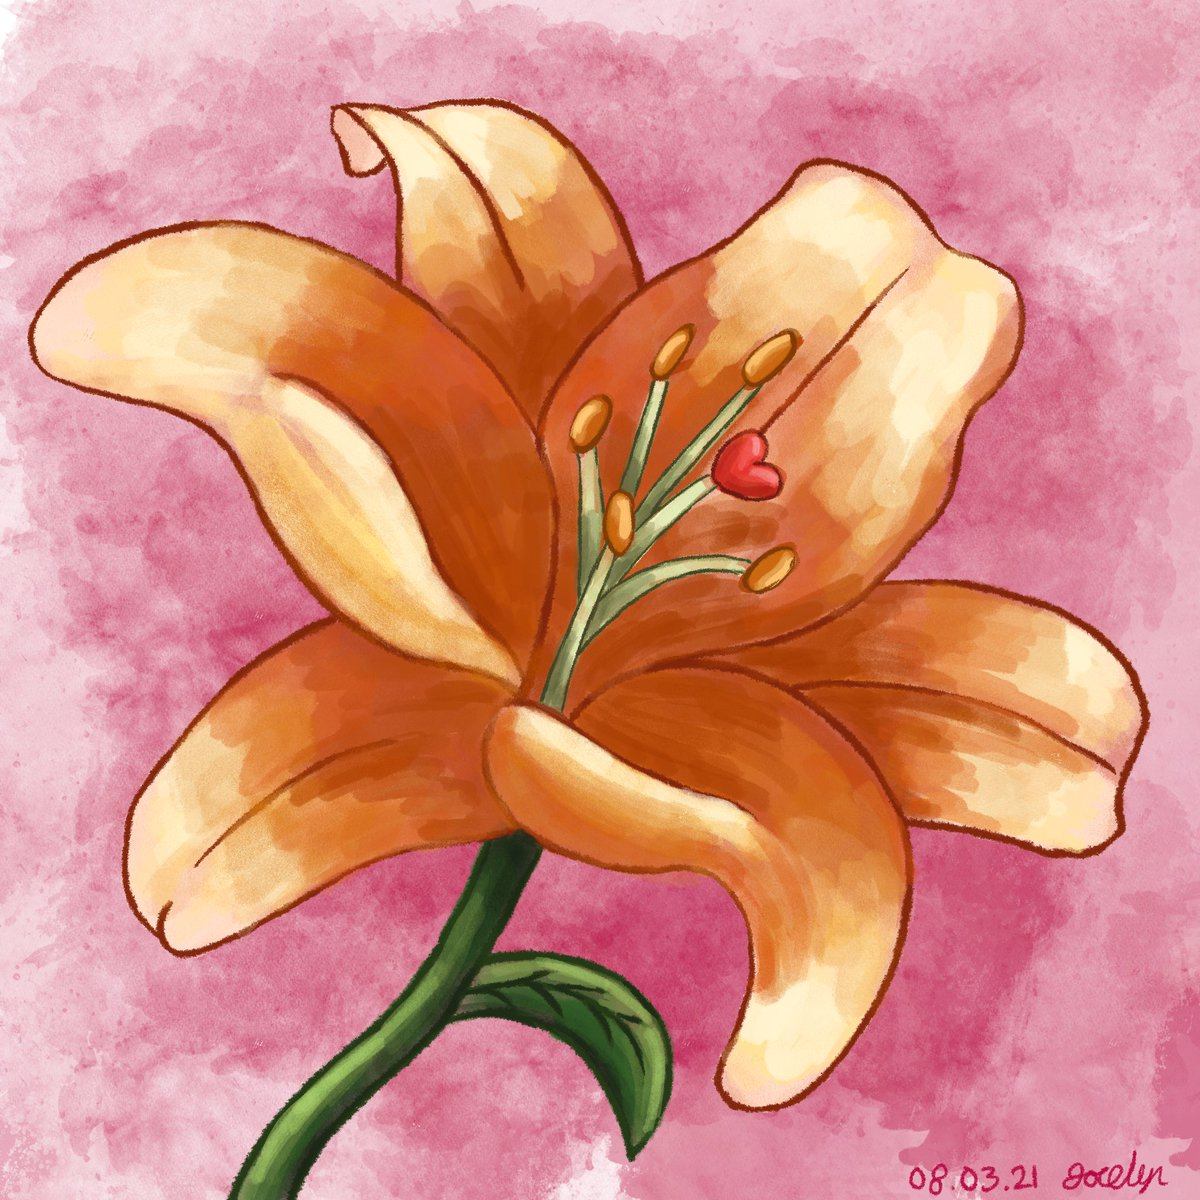 Drew this for my Grandma as a present for Mothers Day #art #artist #drawing #MothersDay #Flowers